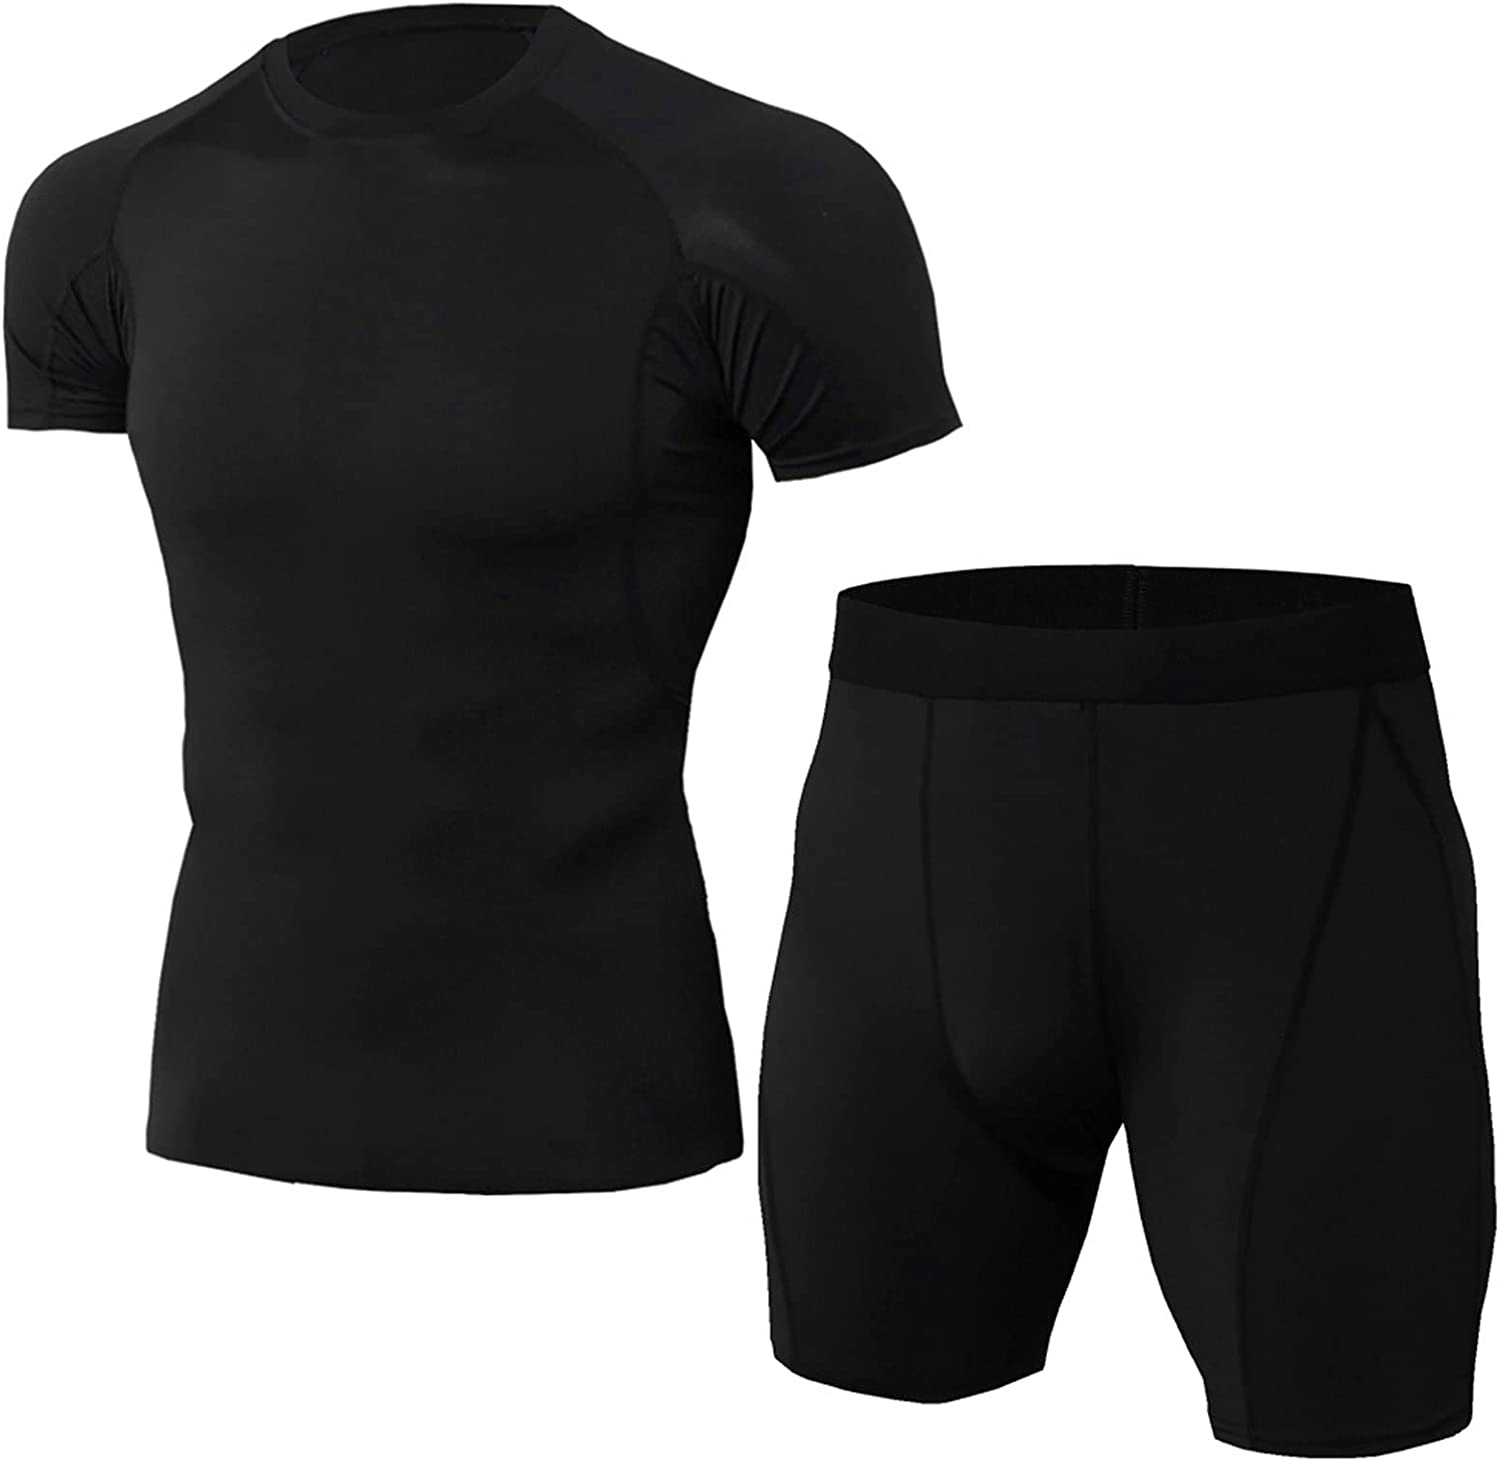 Men's Athletic Compression Sport Sets Short Sleeve Elastic Quick-dry 2 Piece Outfits Summer Beach T-shirt Shorts Set